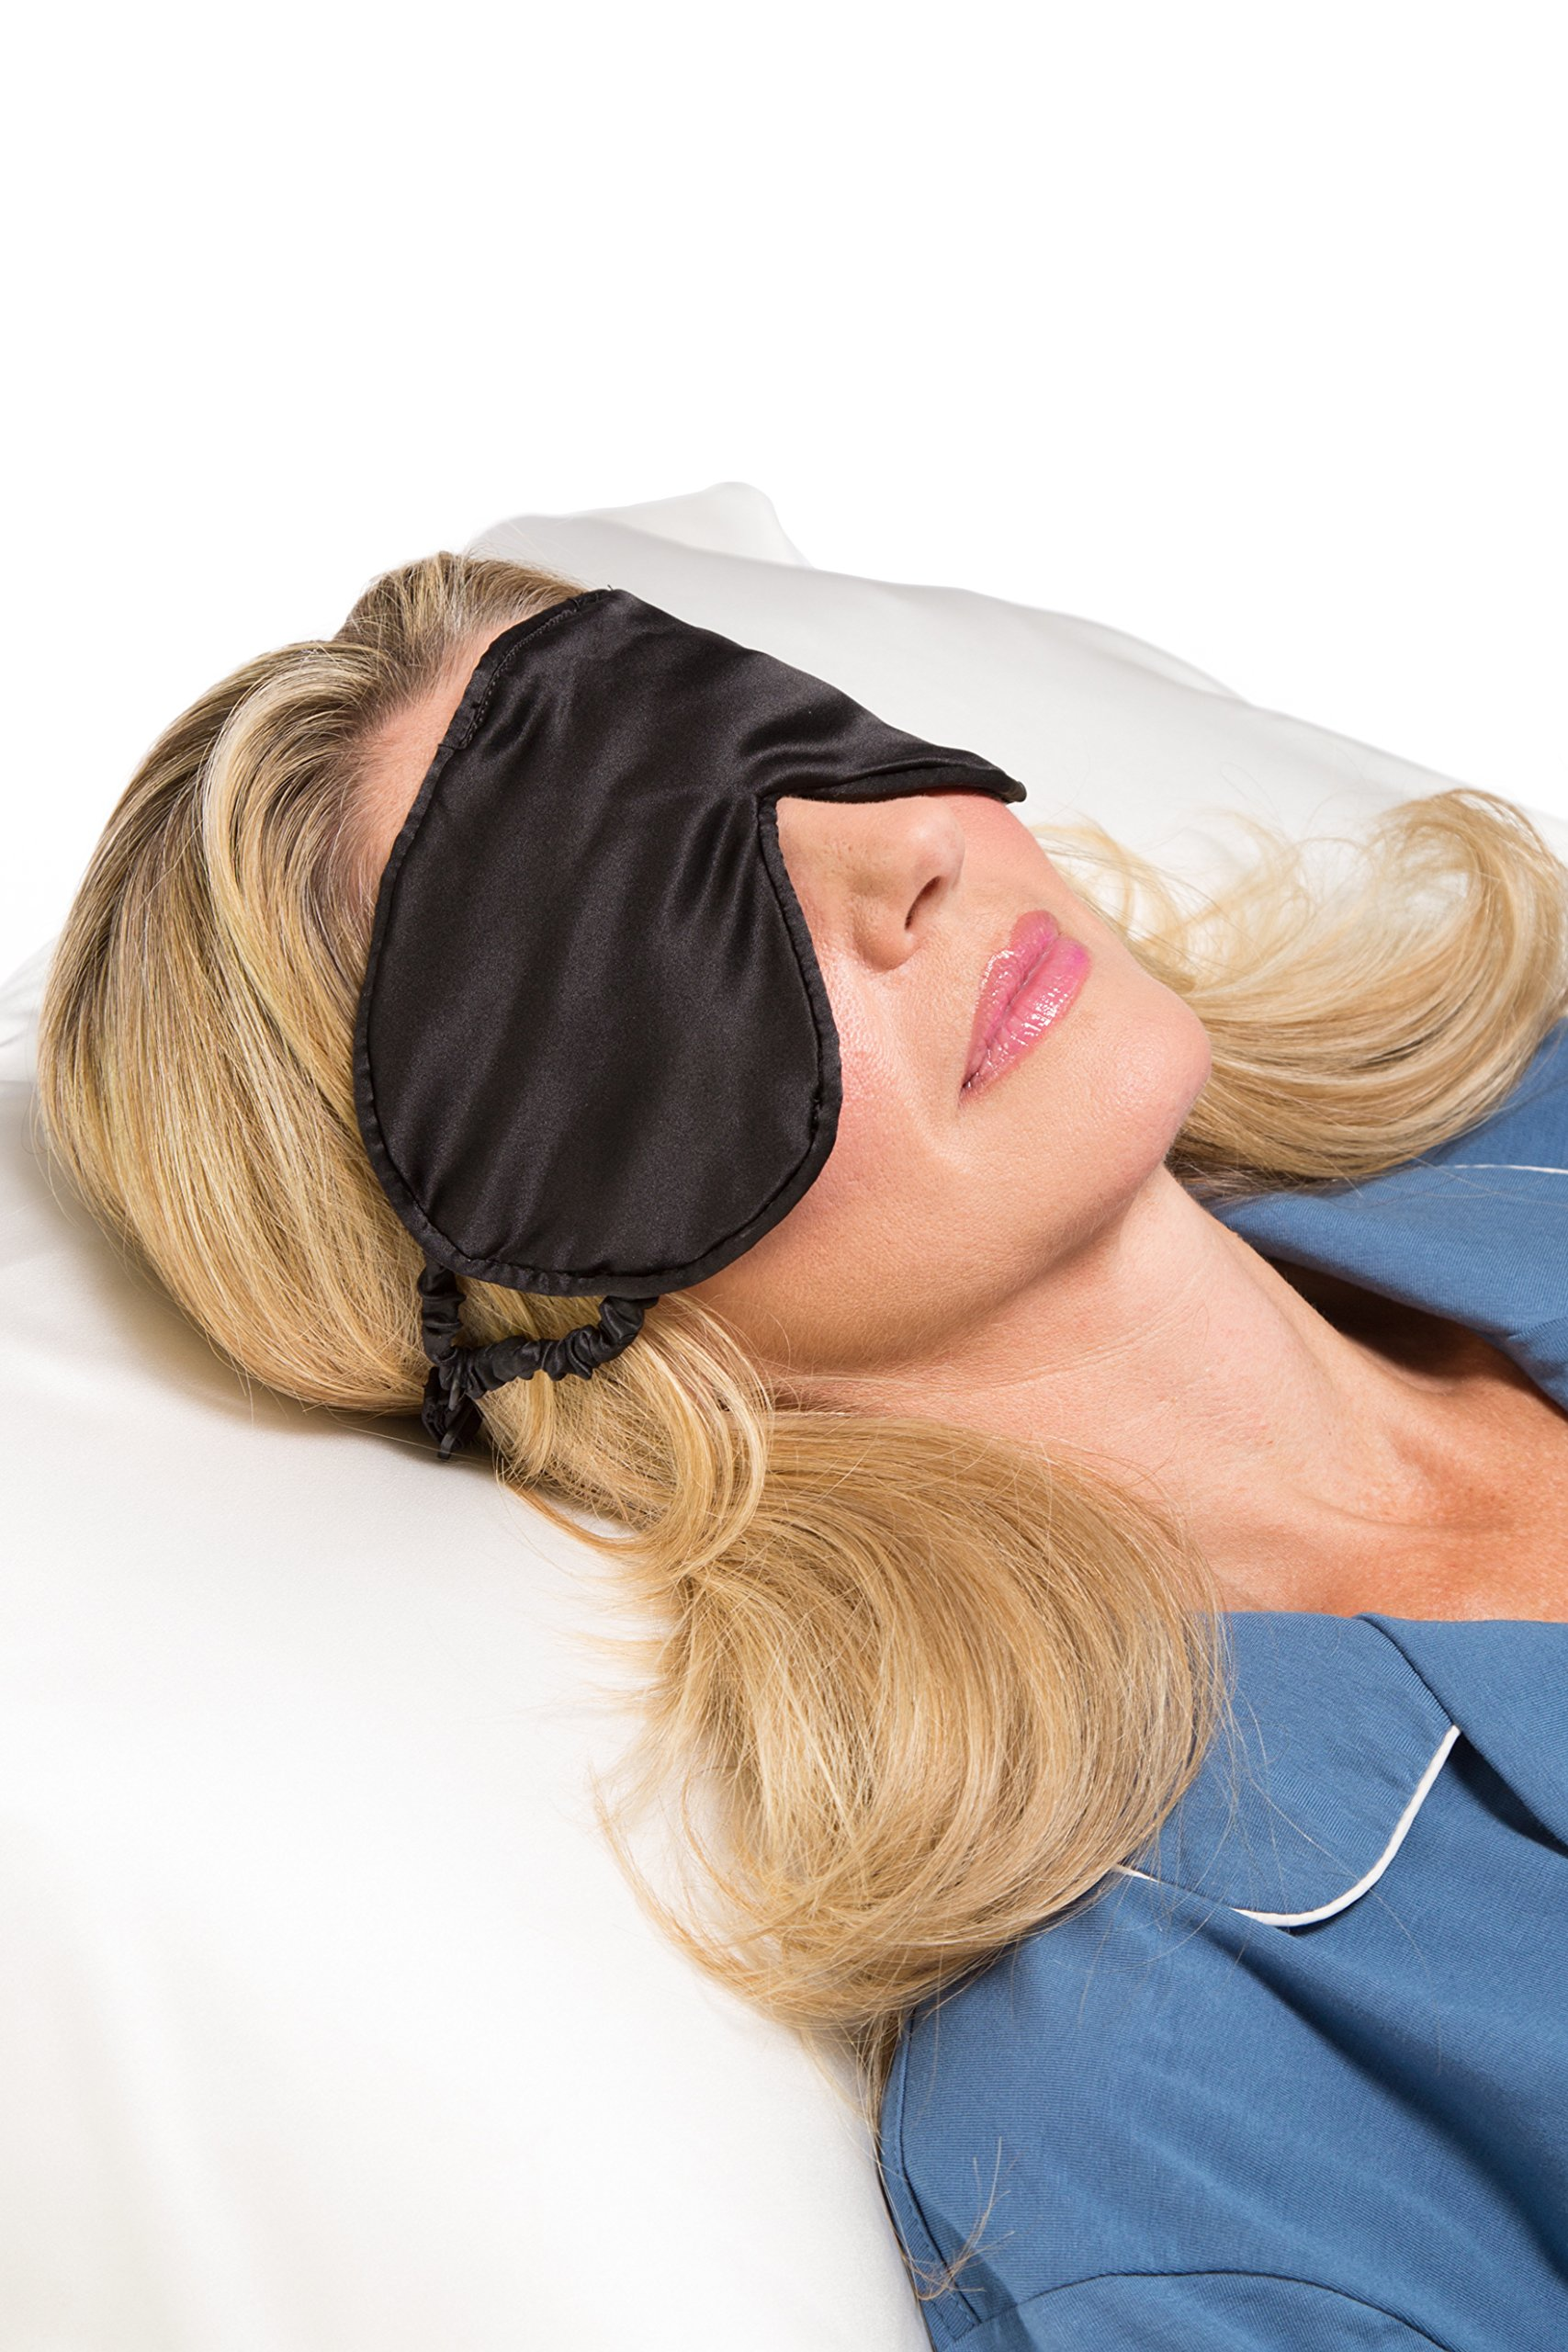 Tranquility Therapeutic 100% Mulberry Silk Sleep / Eye Mask with Adjustable Strap; Hypoallergenic, Facial Eye Beauty and Health Black (Blk)